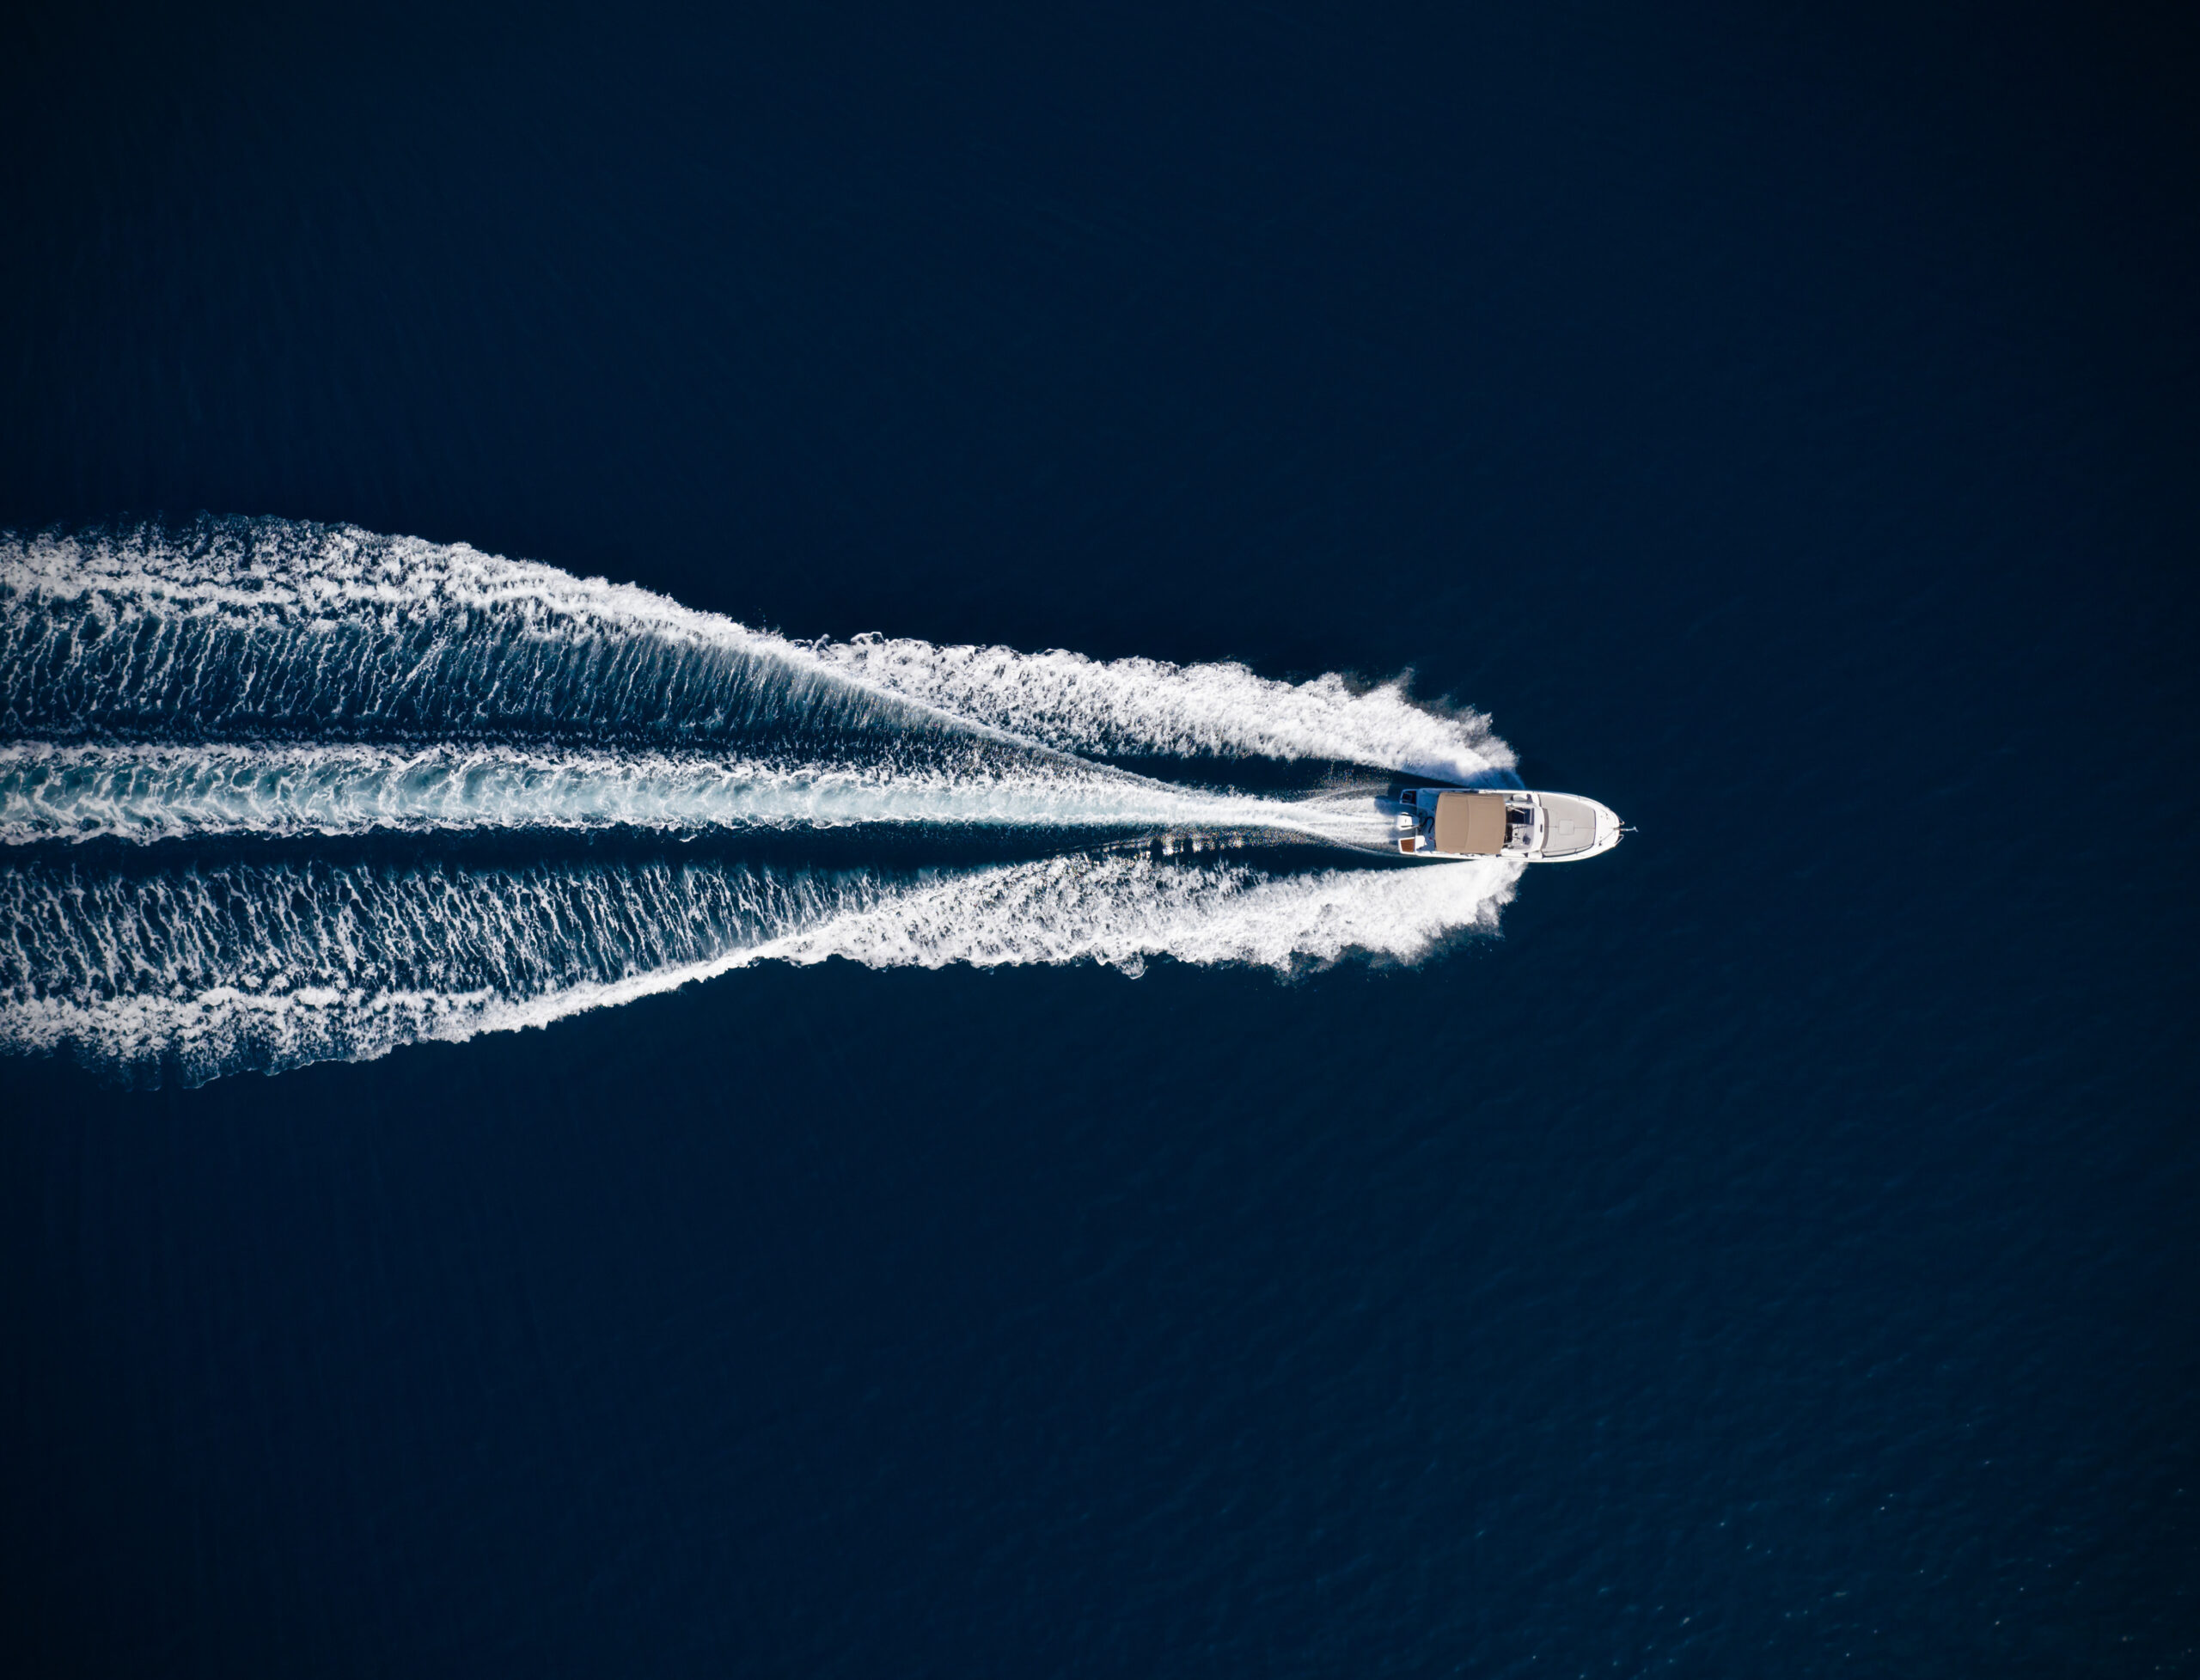 Aerial view of speed motor boat on open sea.